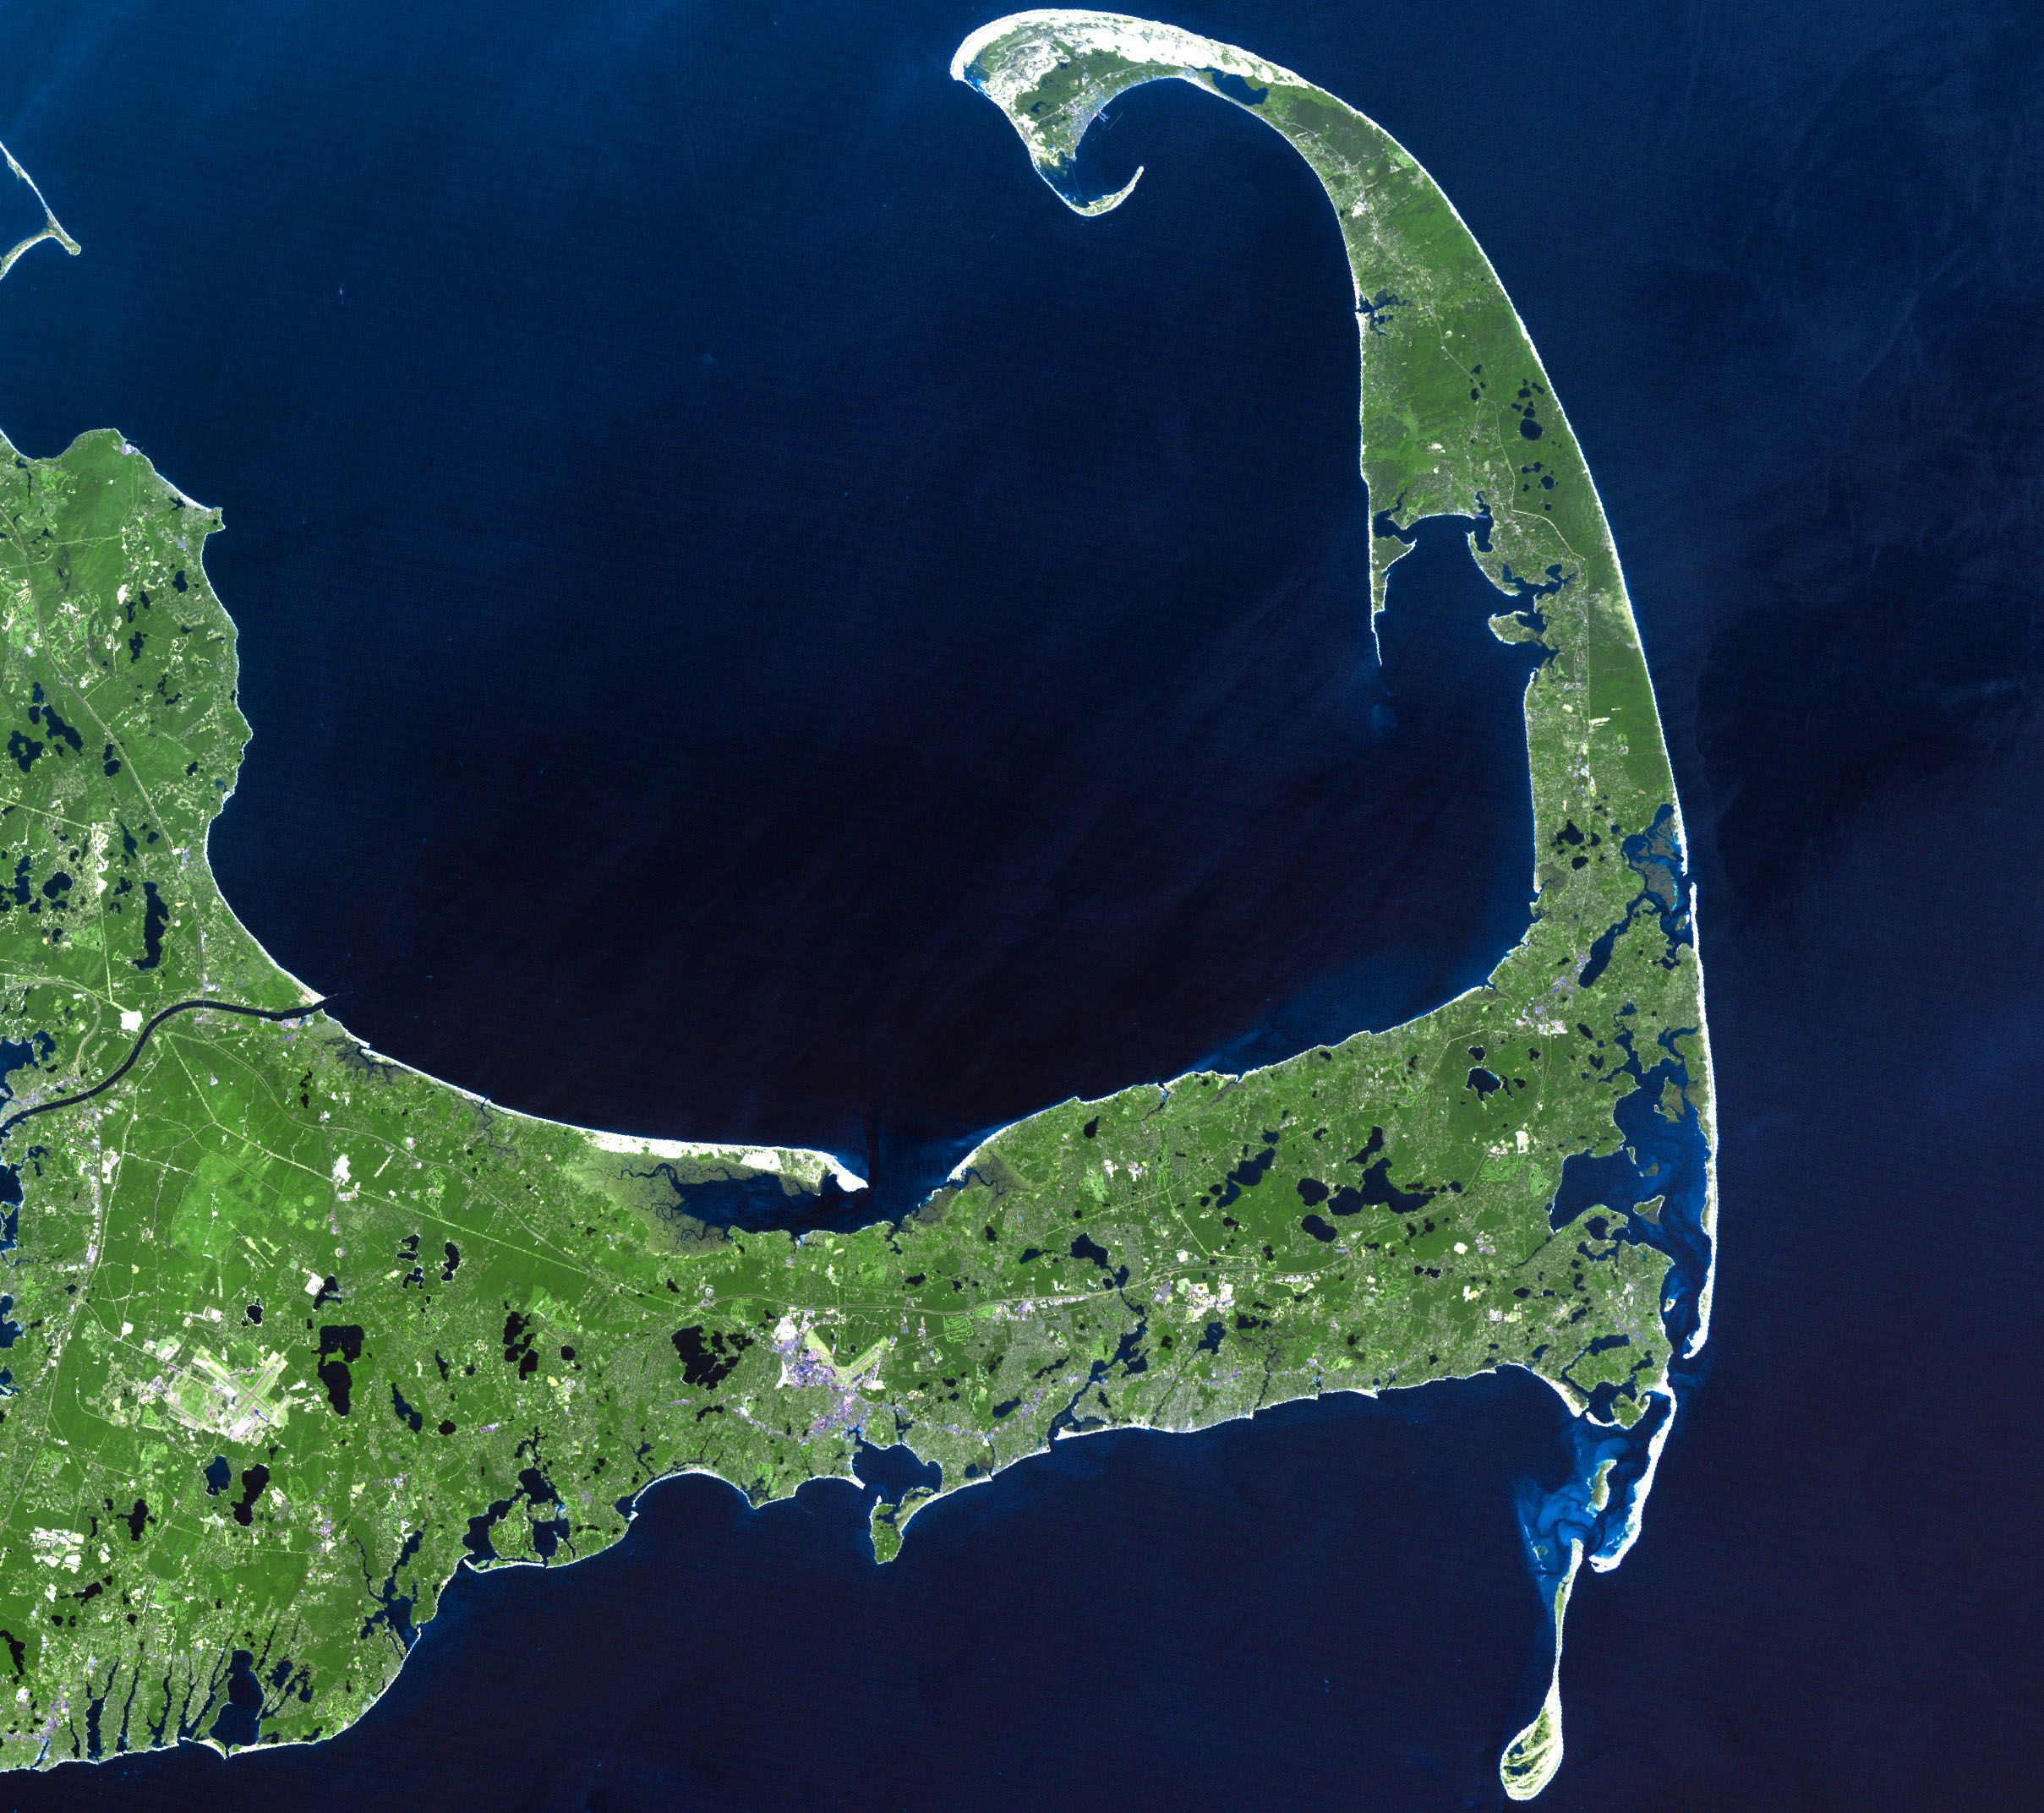 Image Detail For File Cape Cod Landsat 7 Jpg Wikipedia The Free Encyclopedia Cape Cod Favorite Places Oh The Places You Ll Go